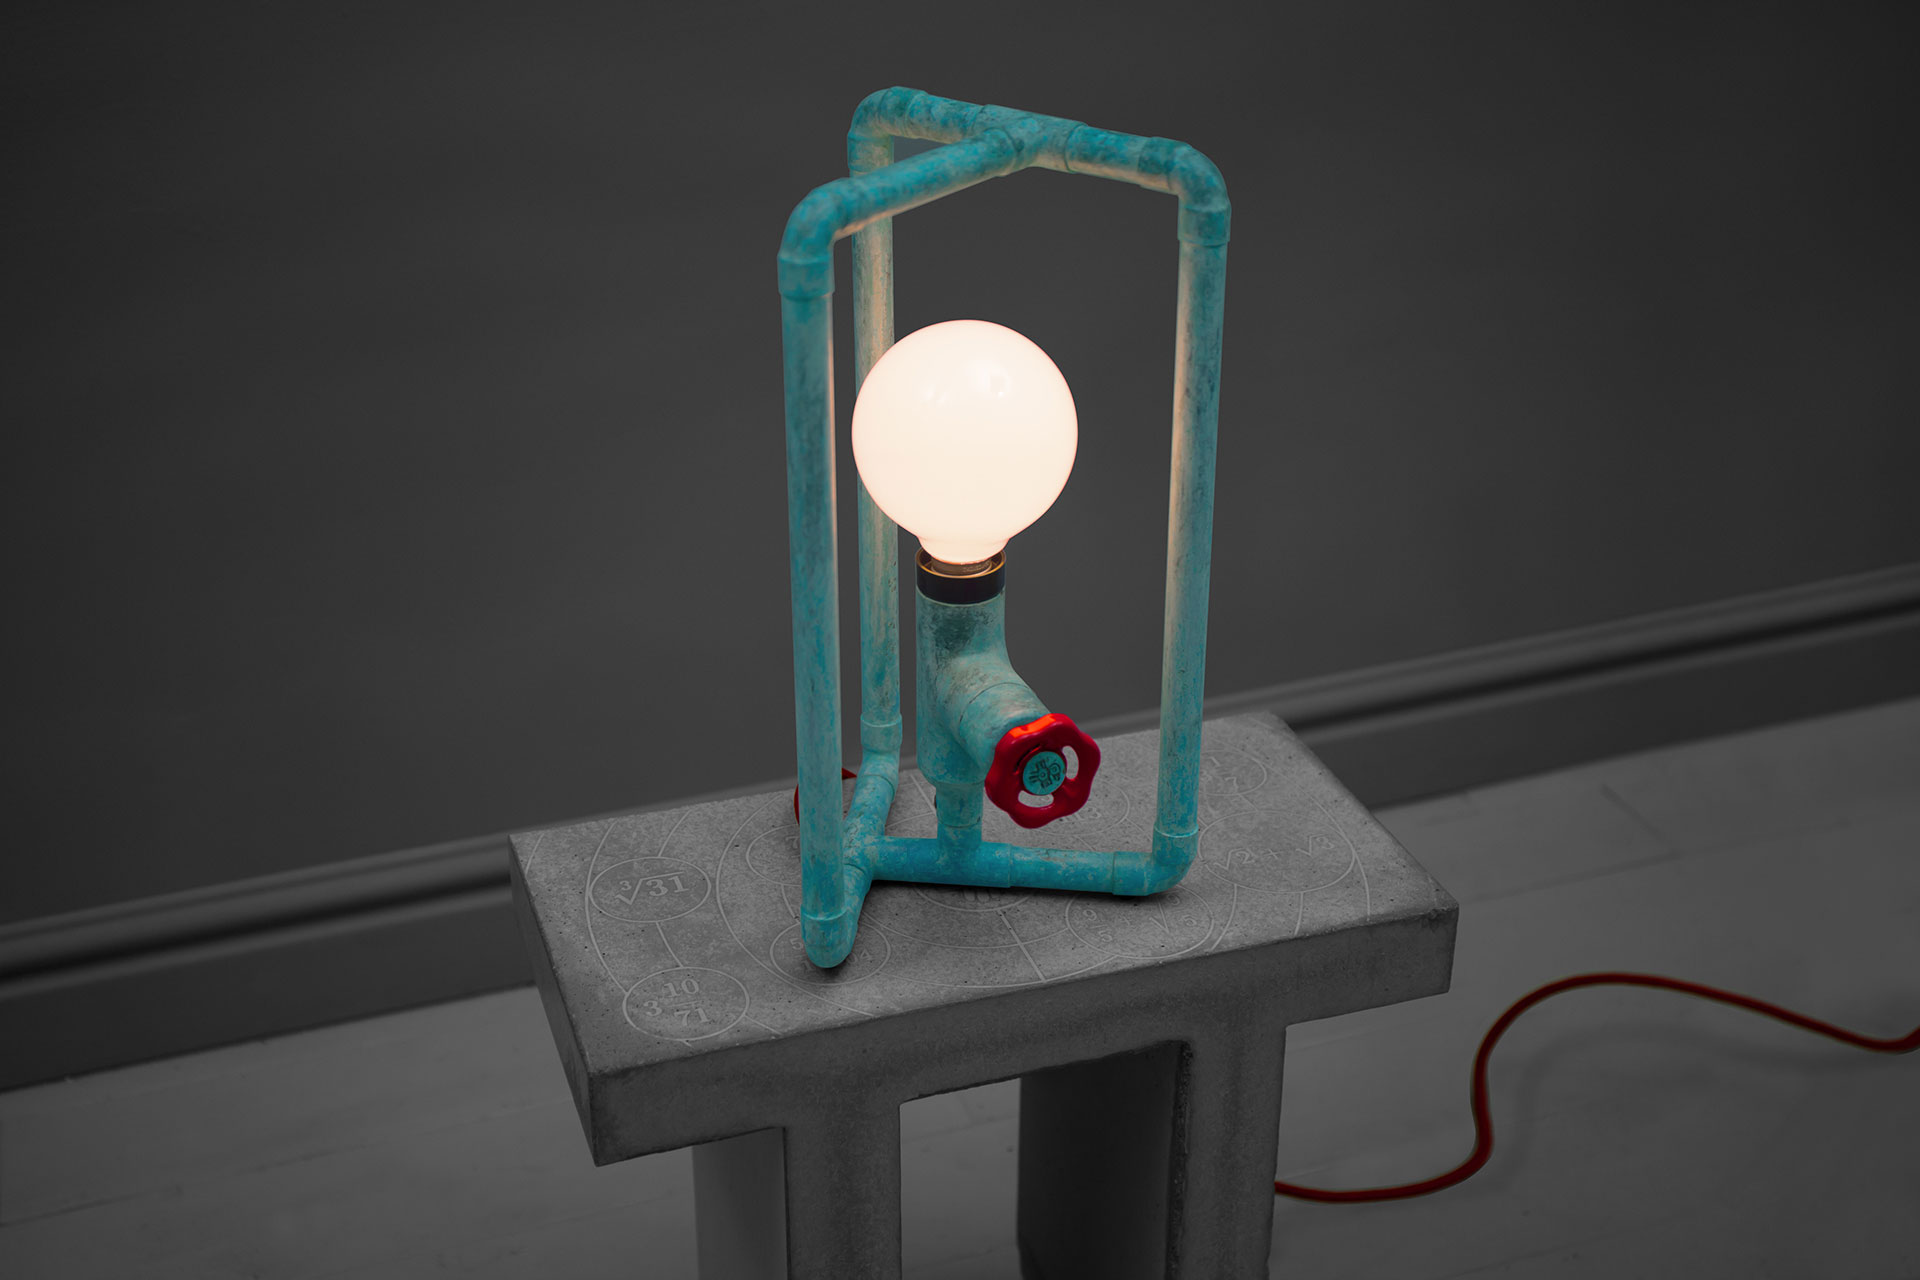 Cool Dimmable Table Lamp In Natural Turquoise Patina Inspired By Loft Design